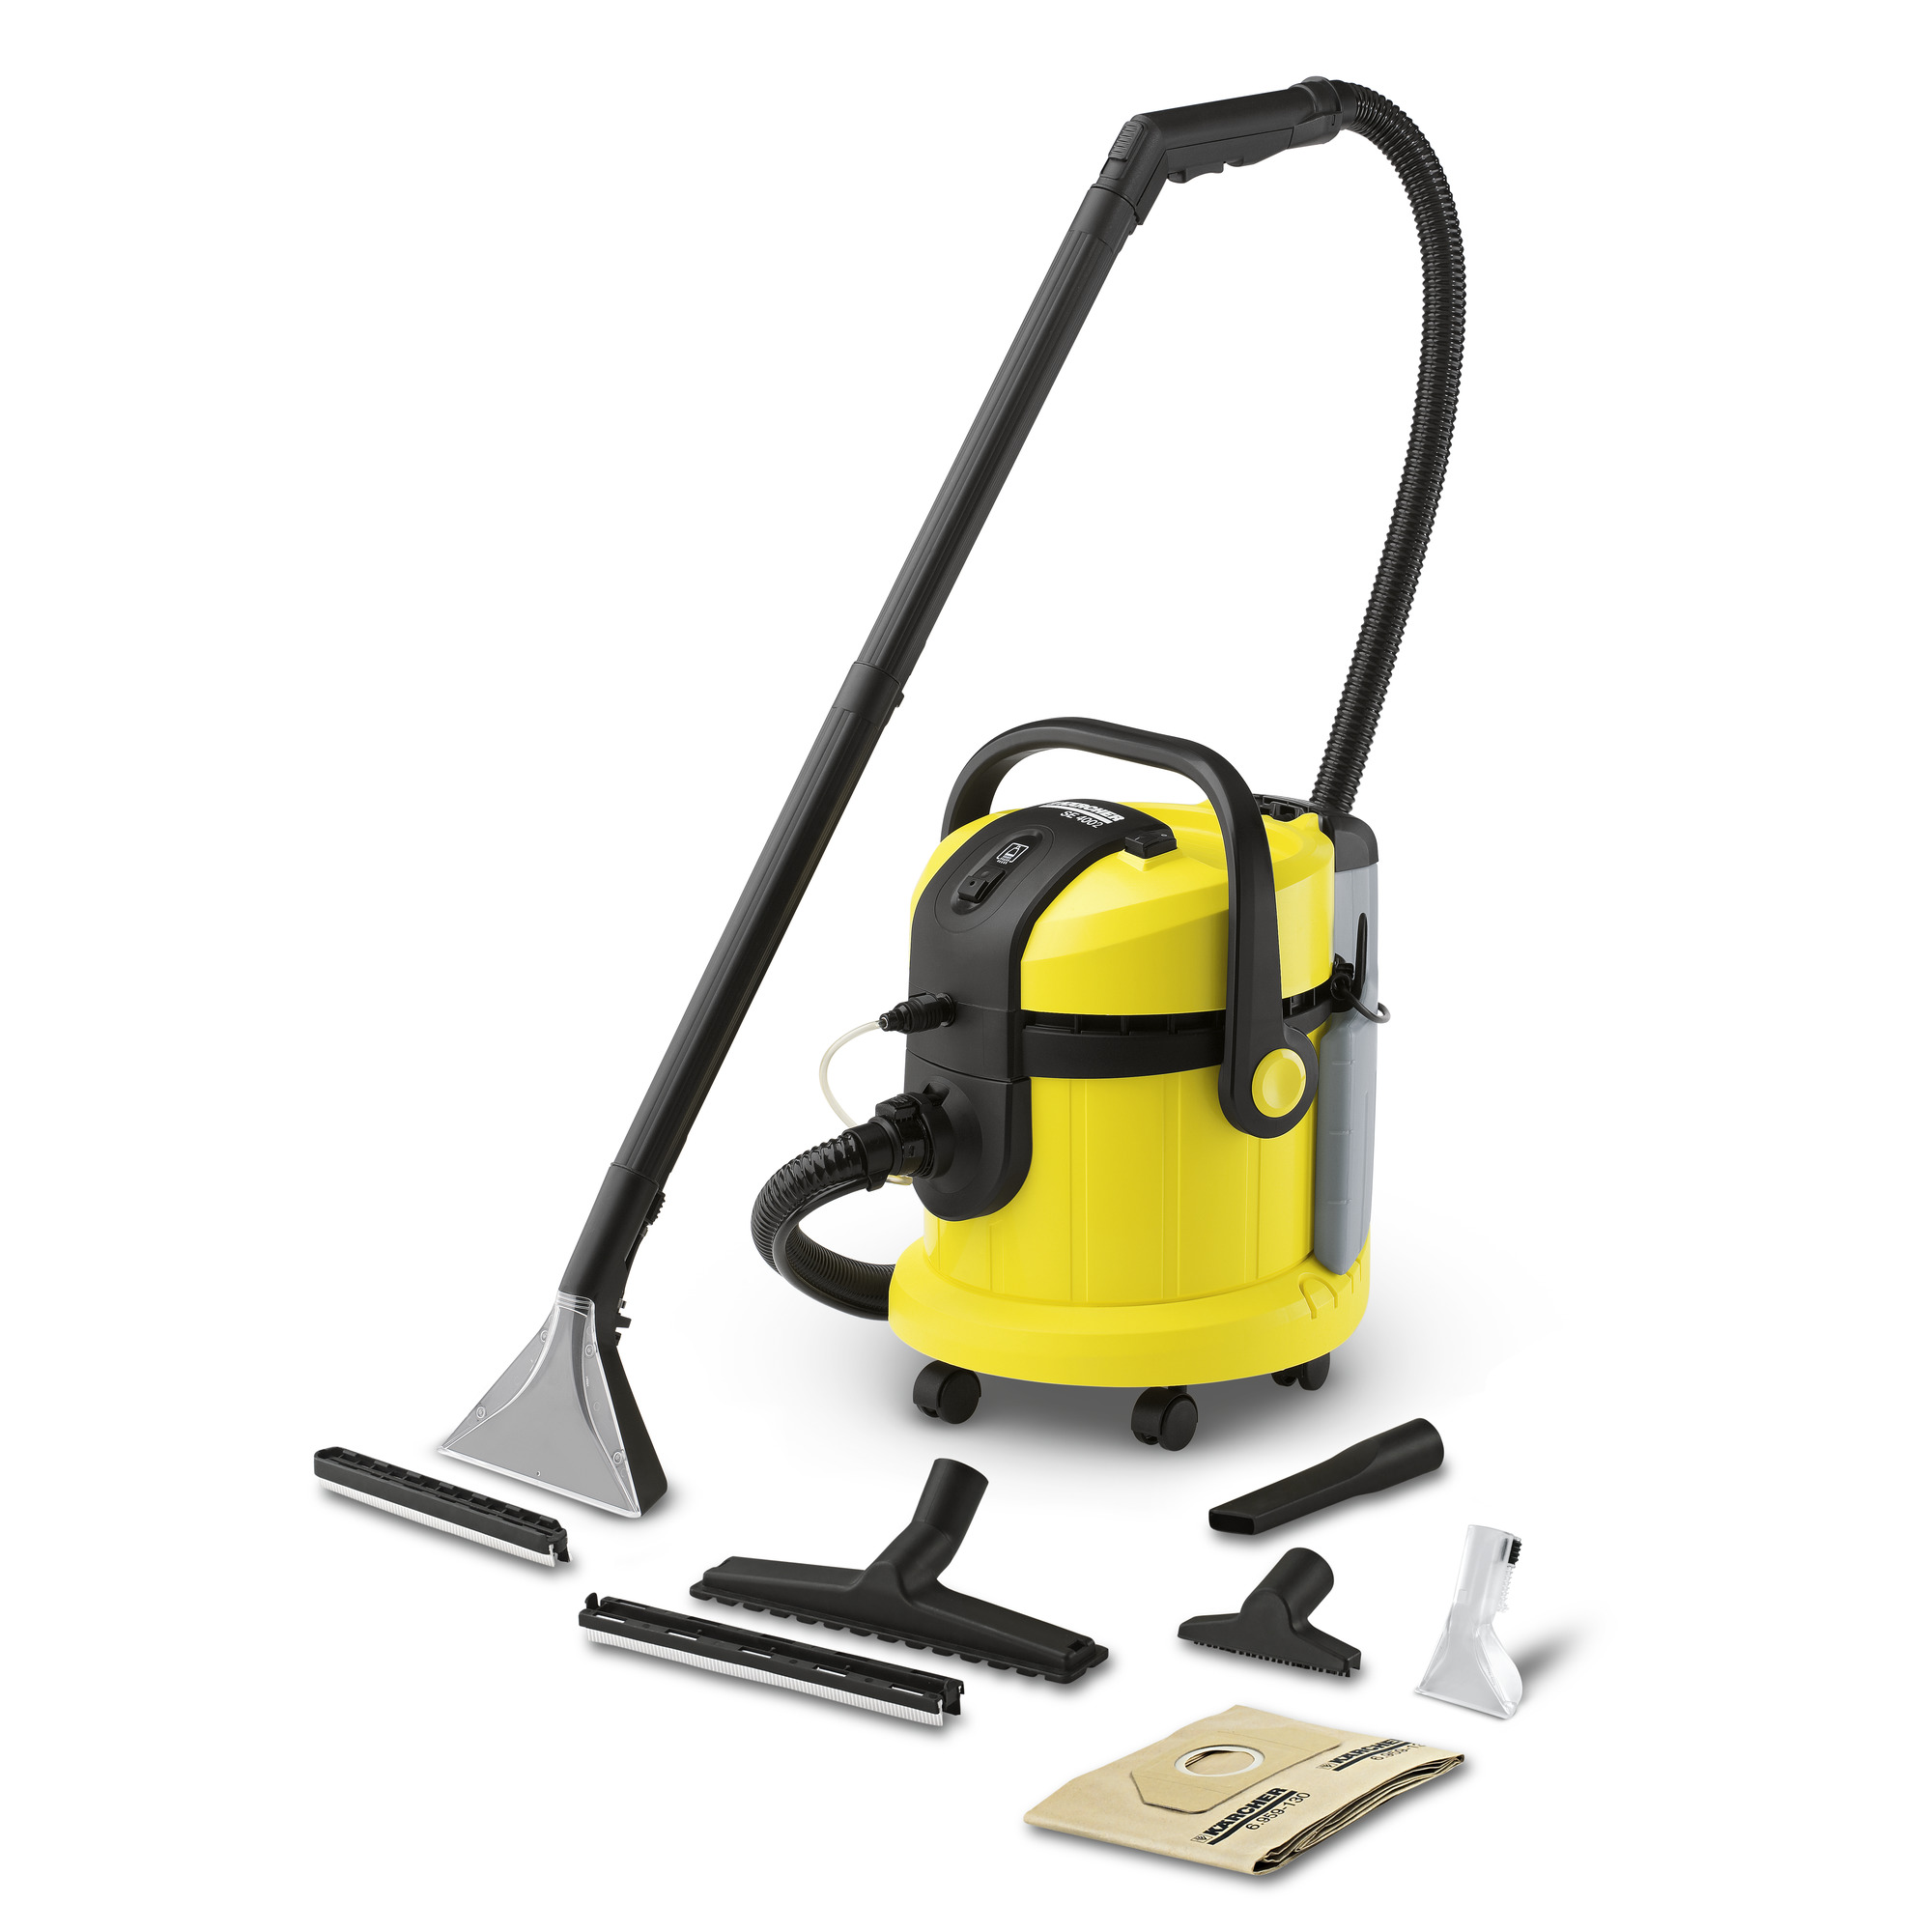 Karcher Buy Wide Range Of Products Online At Best Prices Wd4 Mv 4 Premium Vacuum Cleaner Wet And Dry Carpet Se 4002